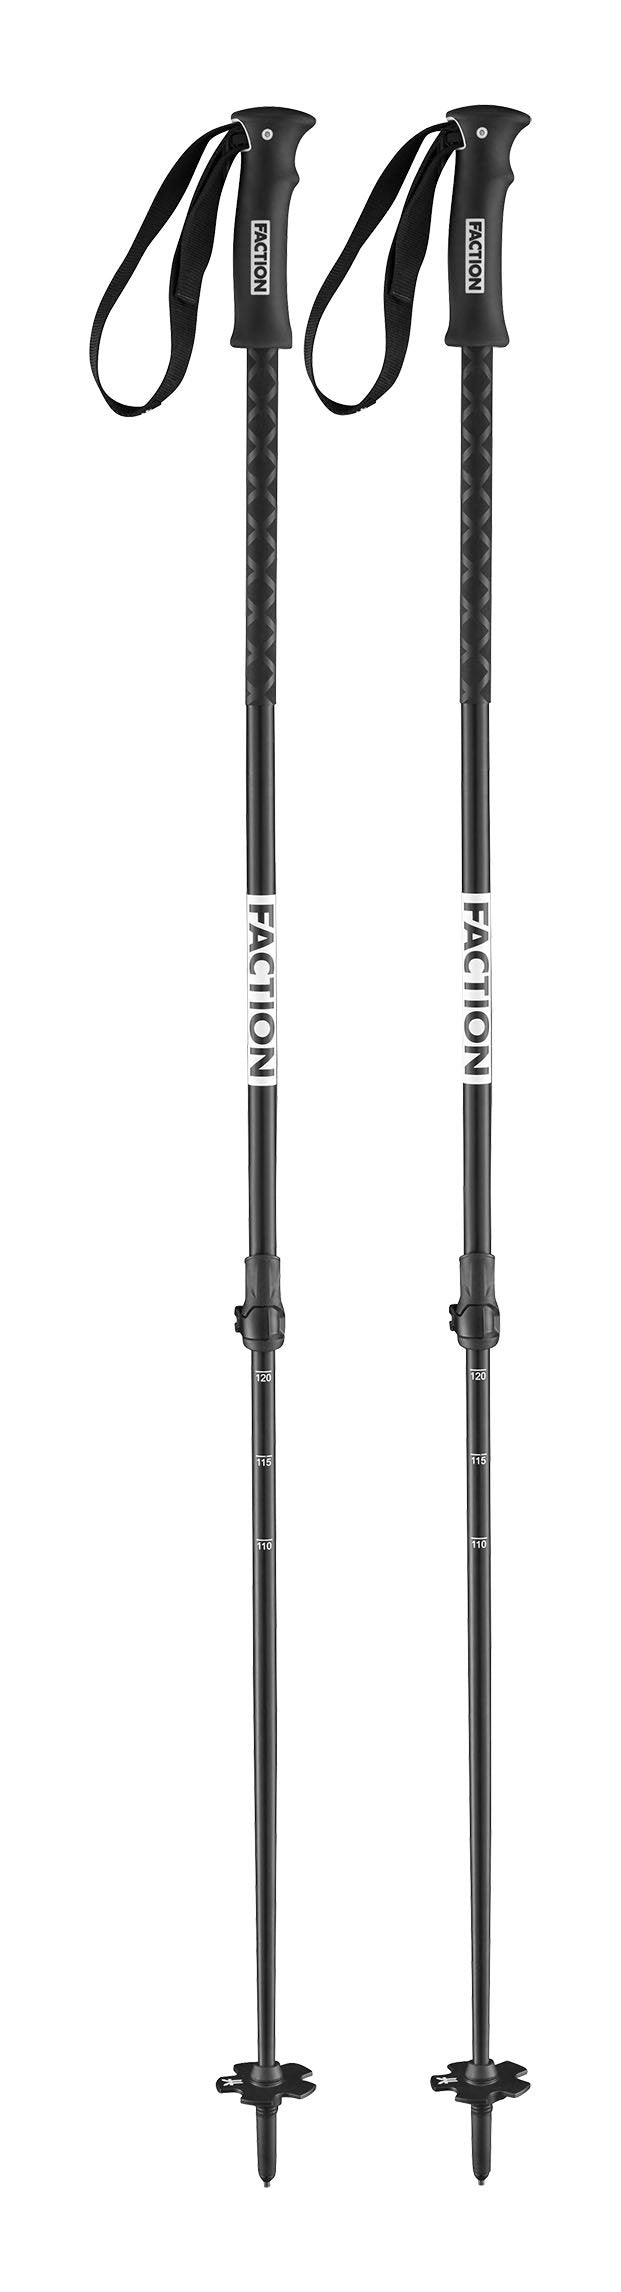 Faction Agent Telescopic Ski Poles 2020